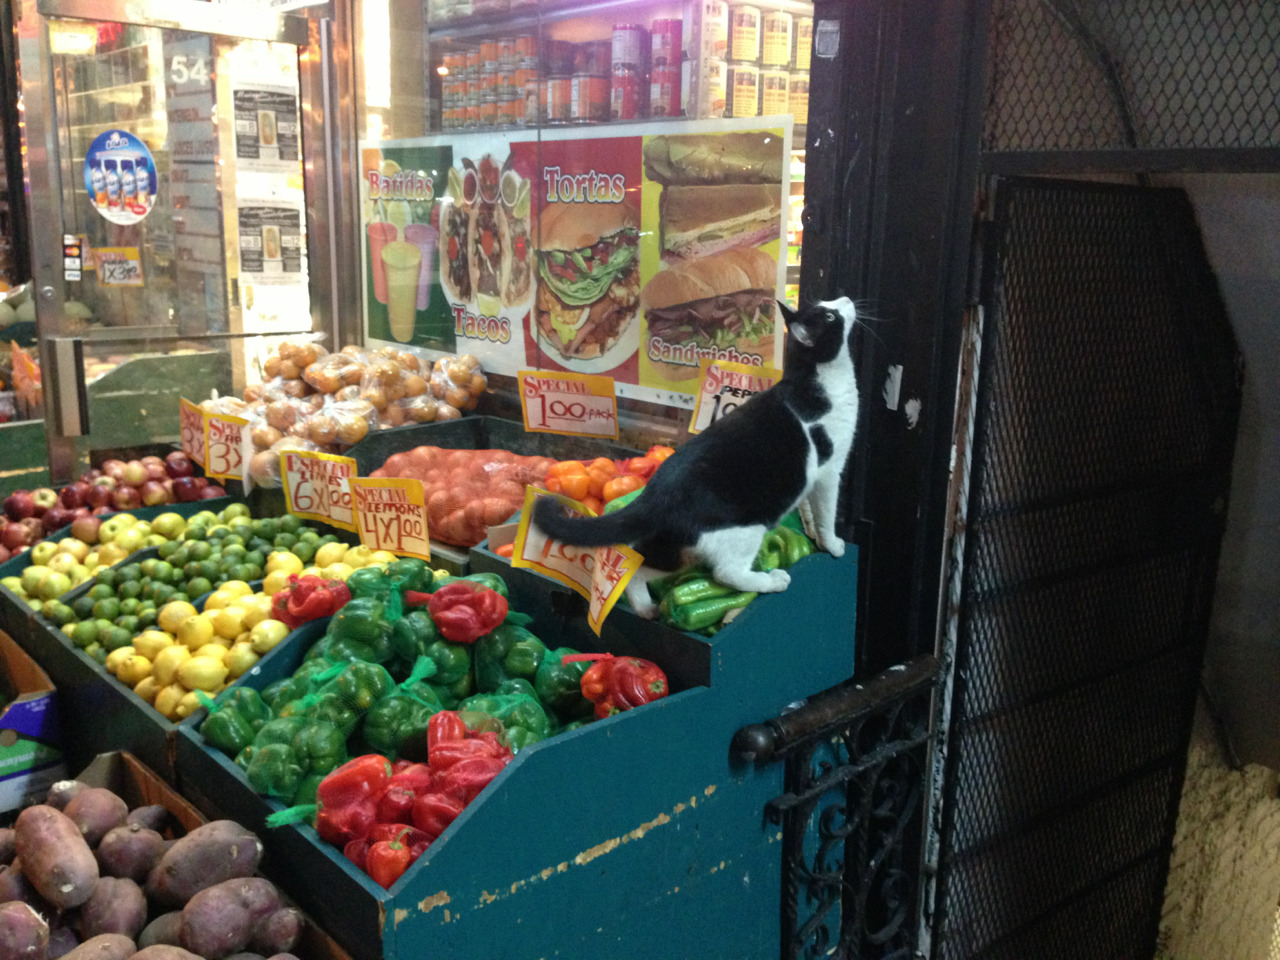 Get the red peppers, the ones next to the cat…